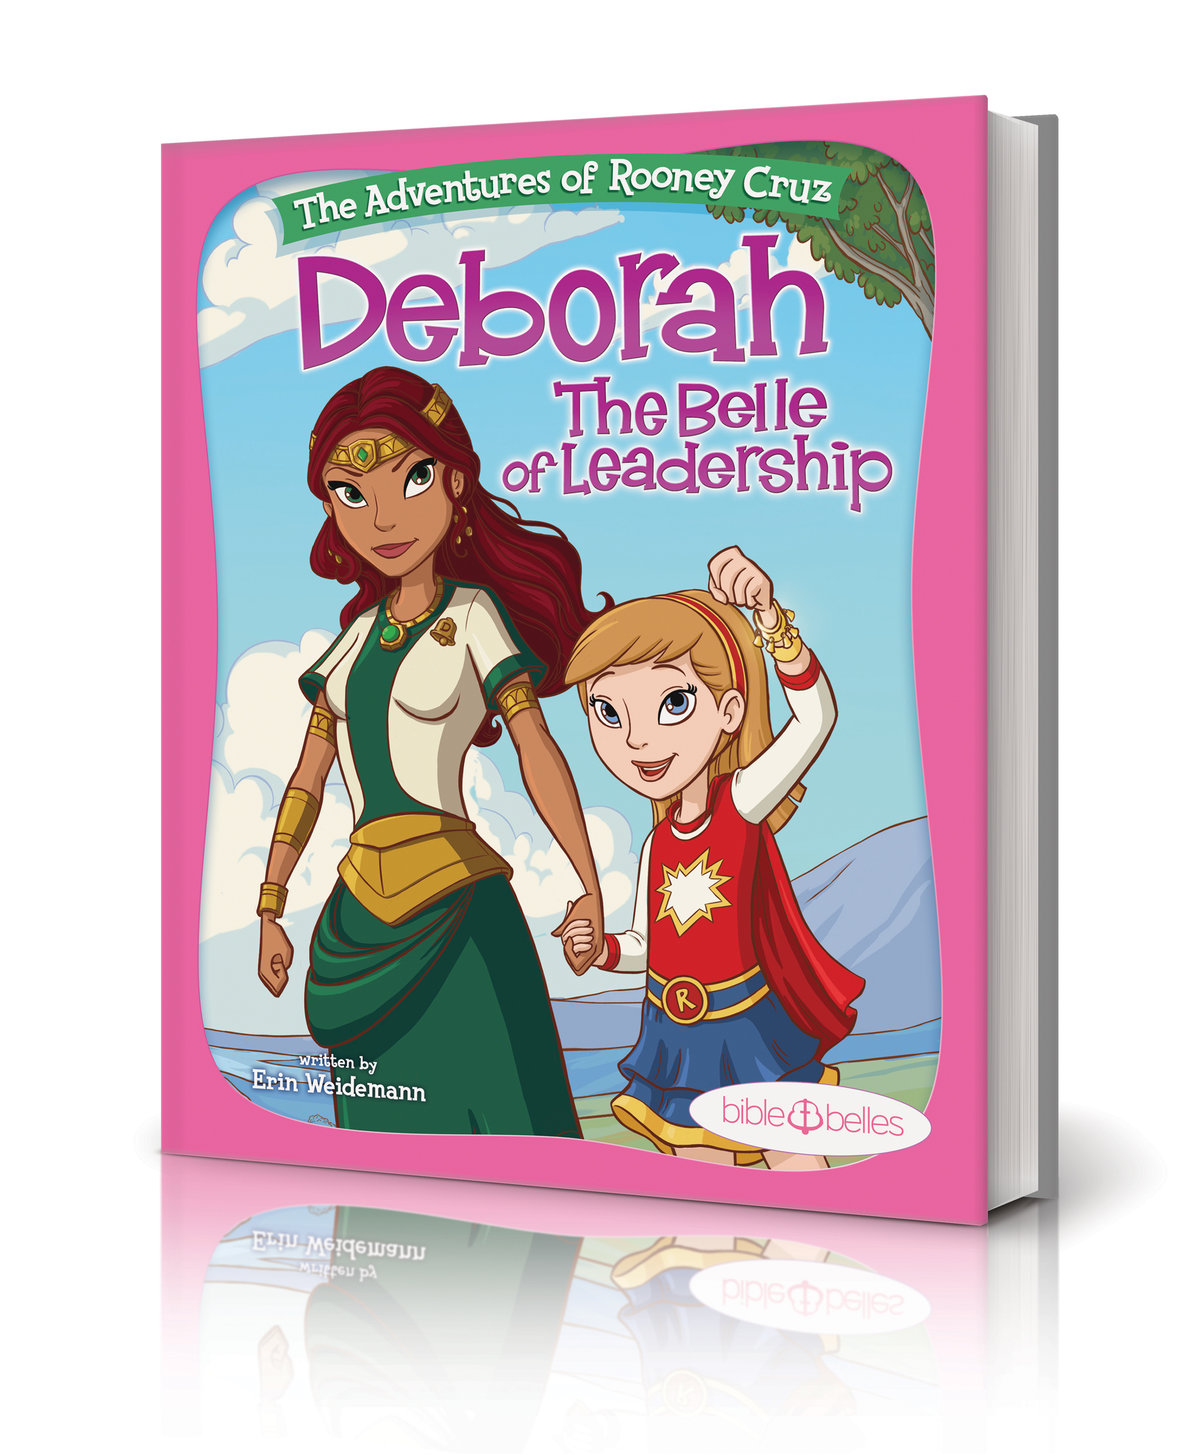 Deborah: The Belle of Leadership